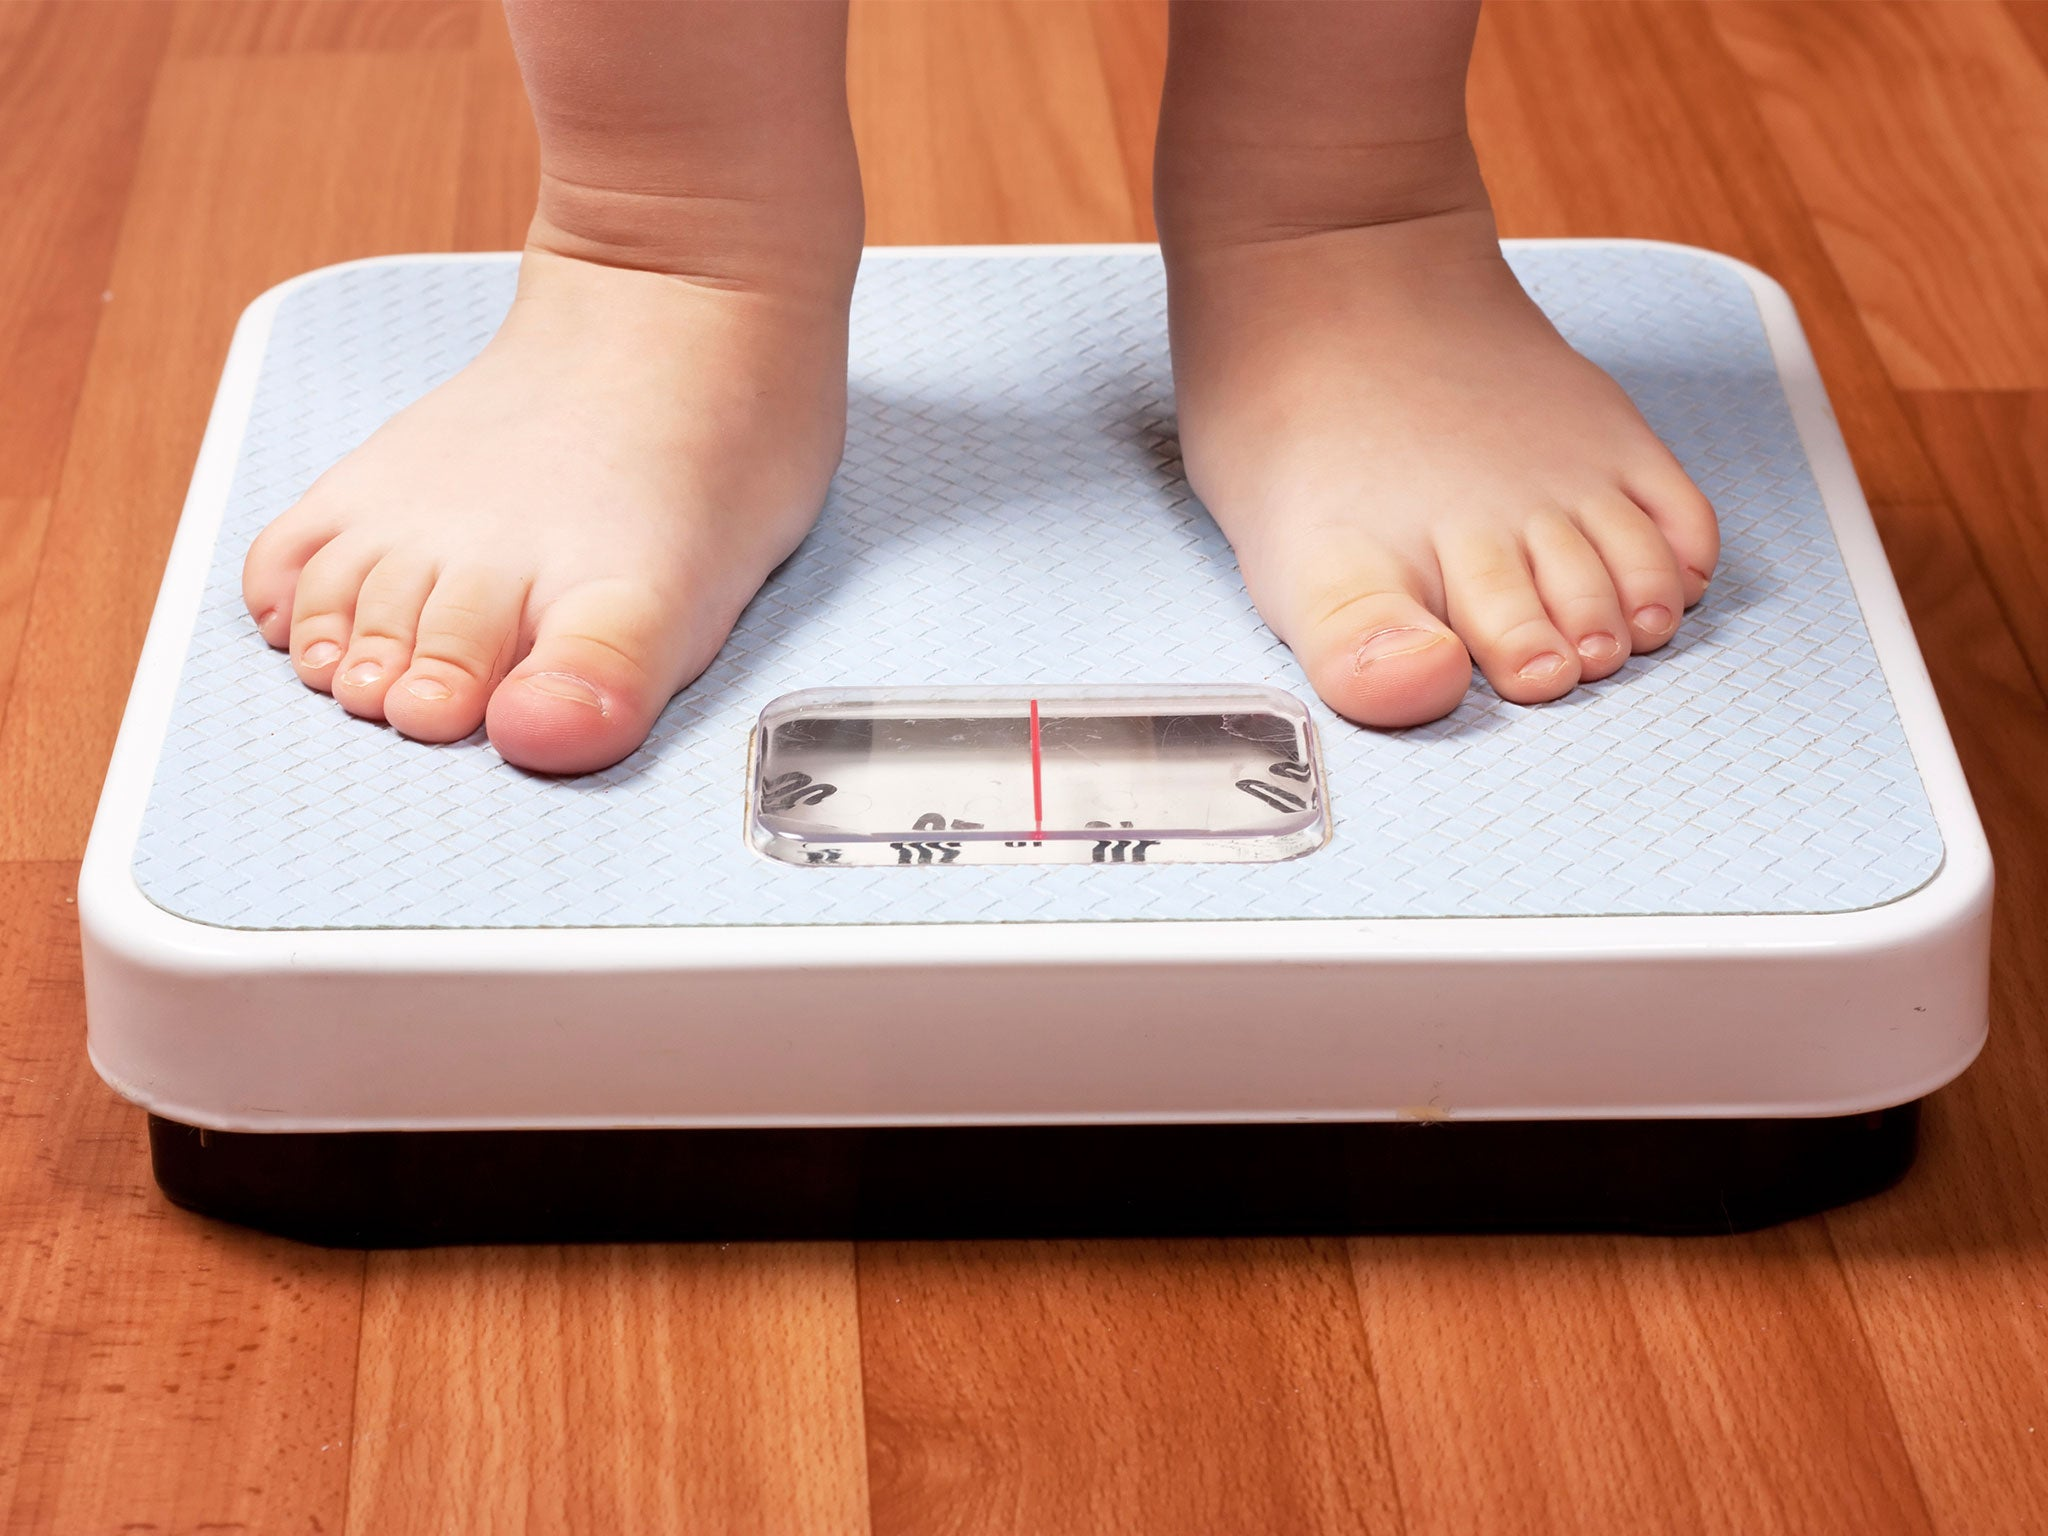 Childhood obesity crisis study blaming working mothers causes outrage